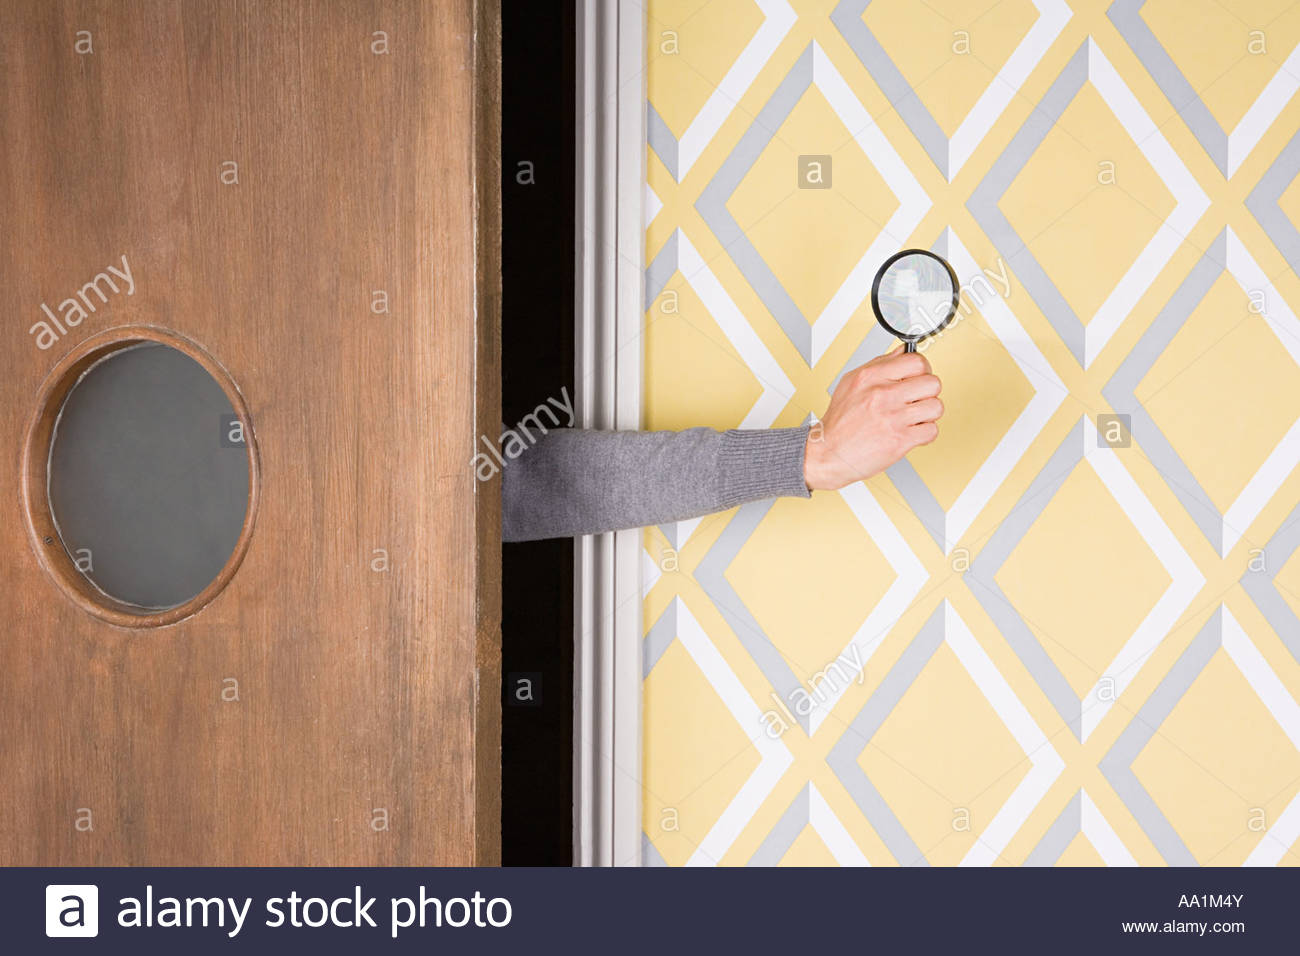 Person holding magnifying glass - Stock Image